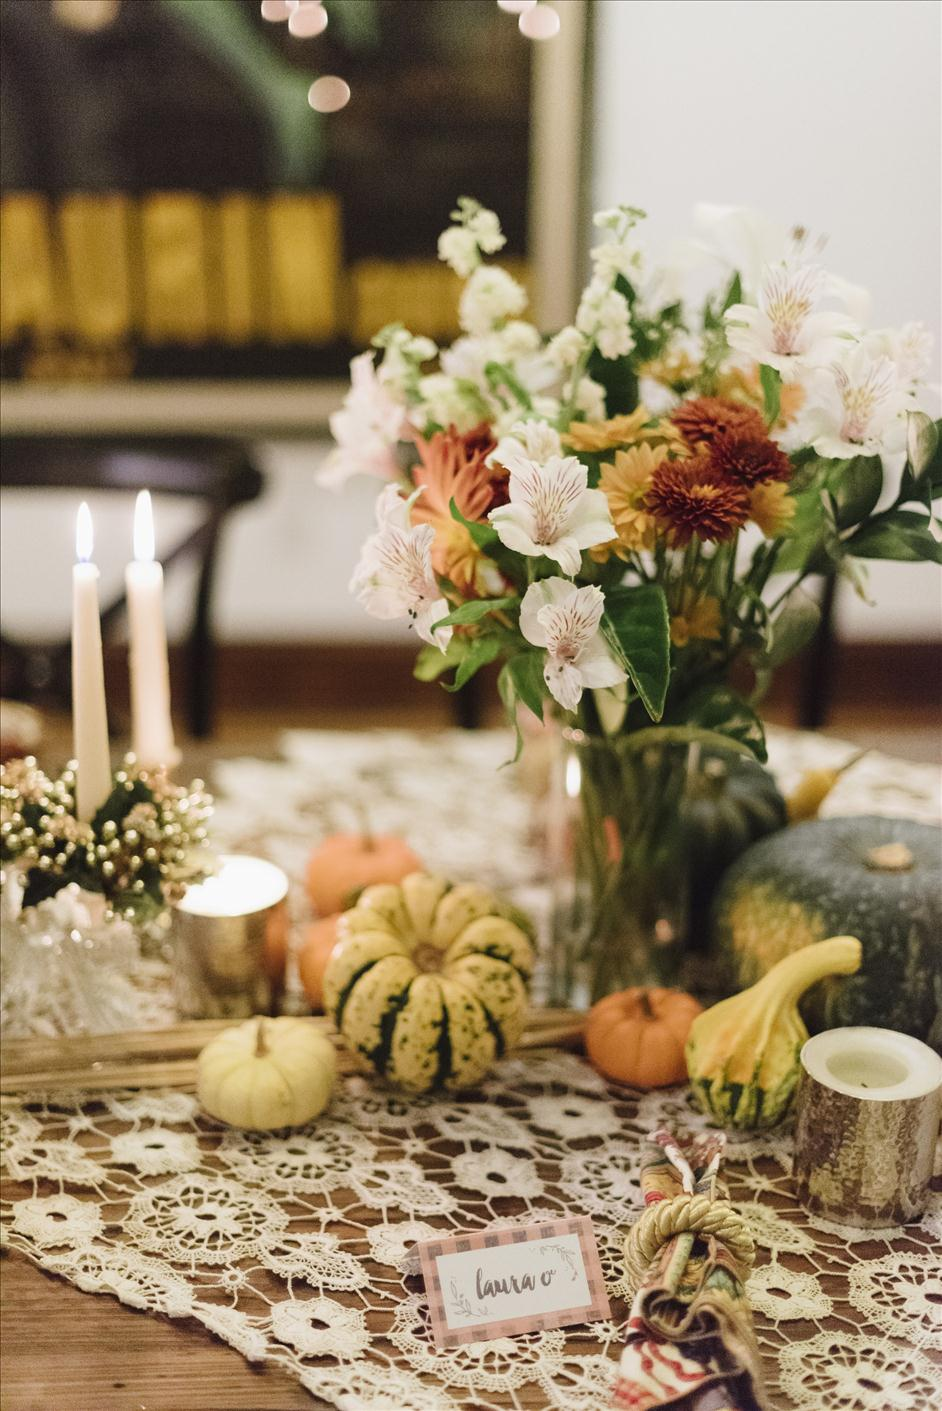 Flowers and pumpkin decor for Thanksgiving table